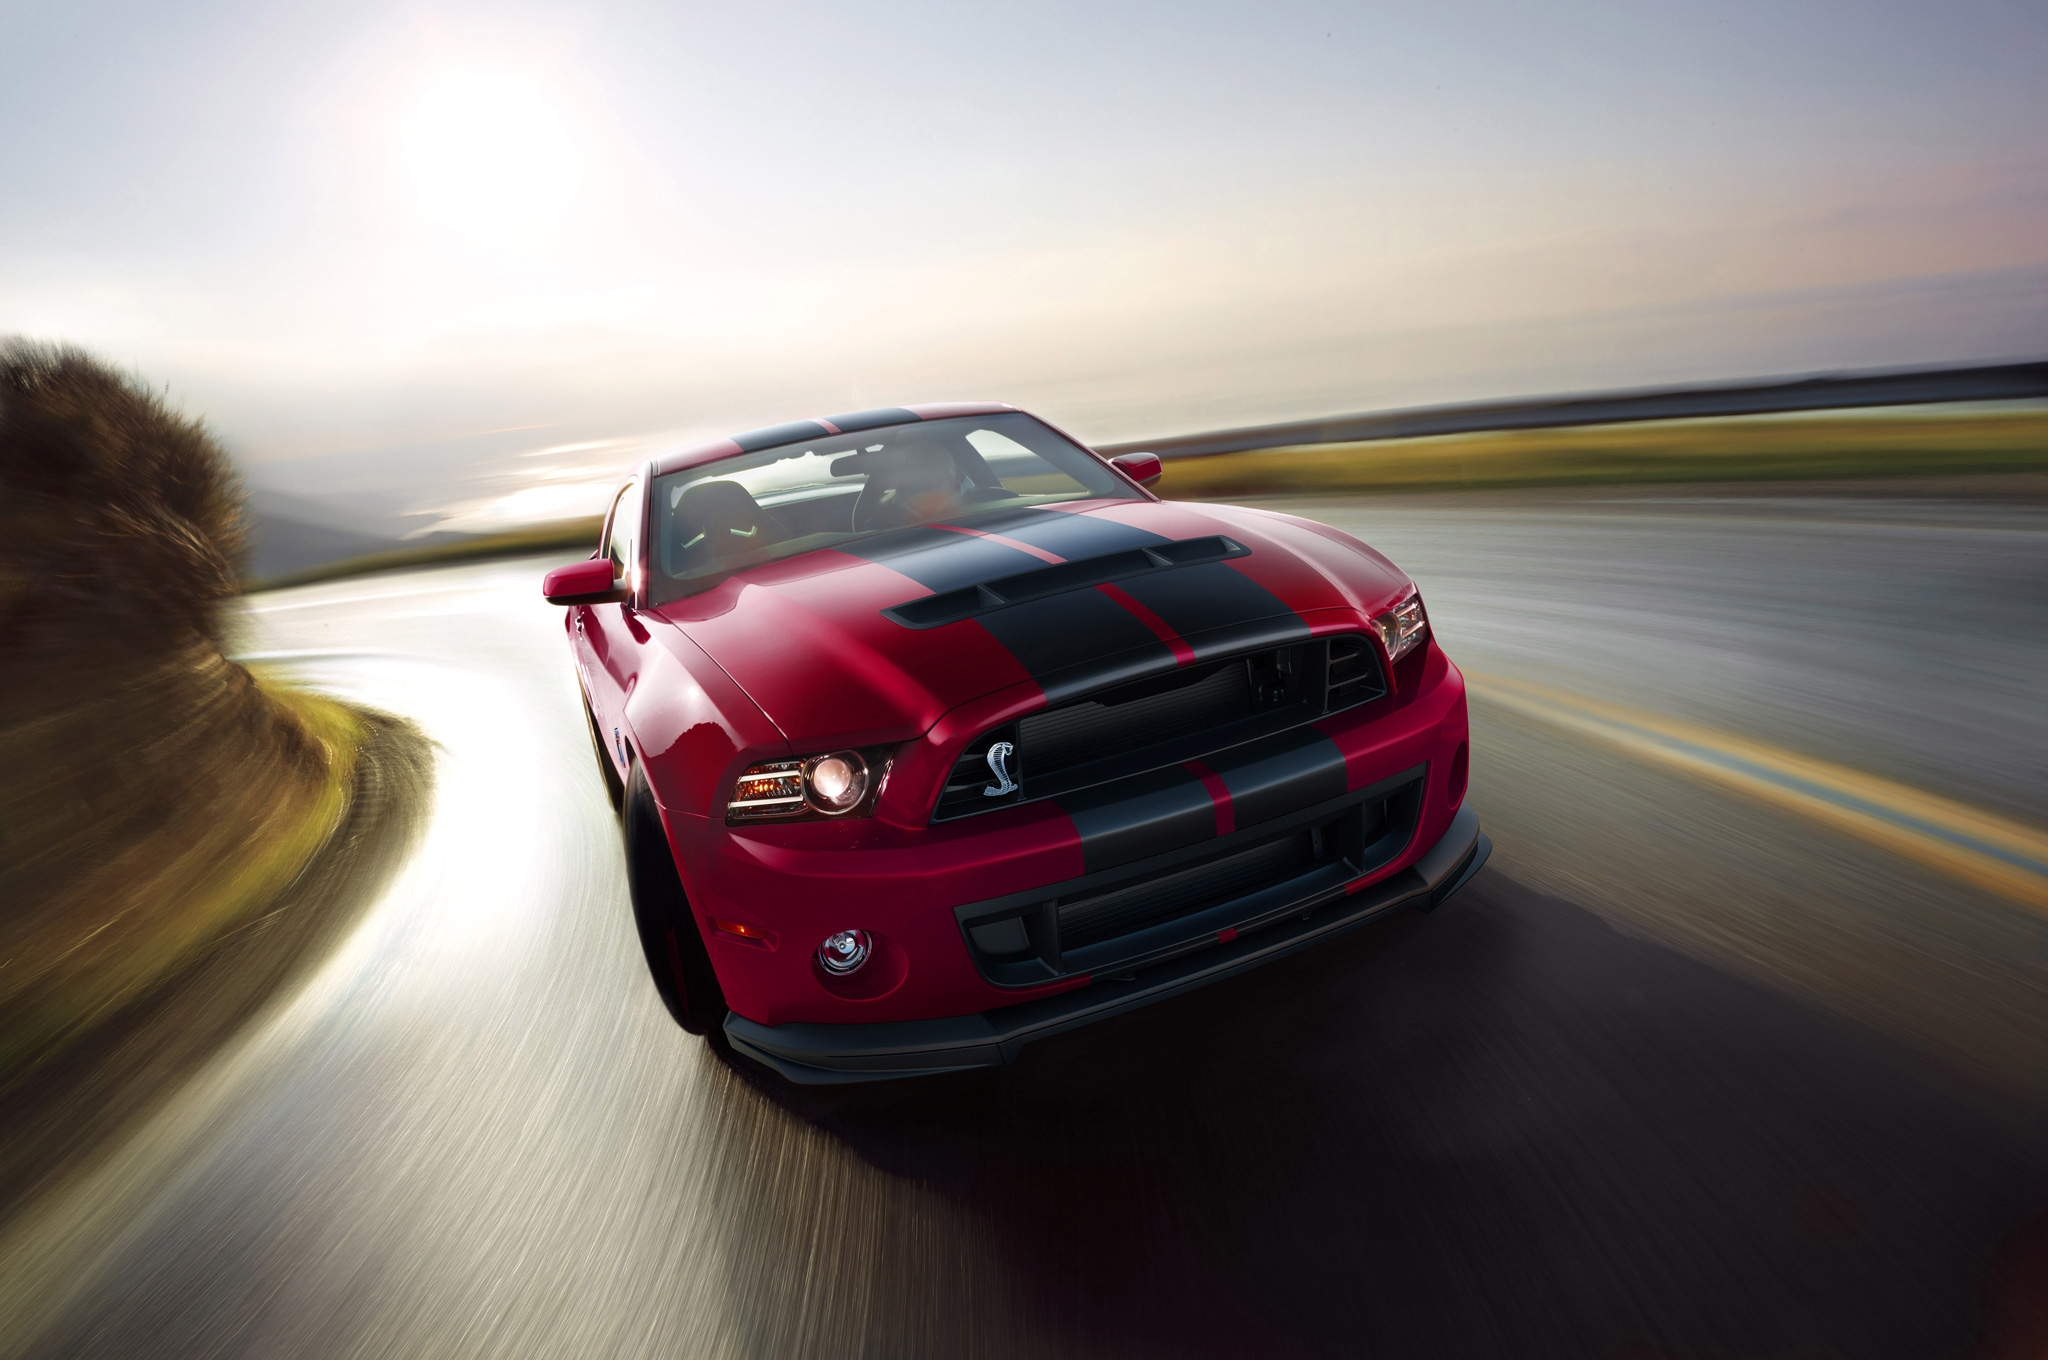 2014 Ford Shelby Gt500 #18